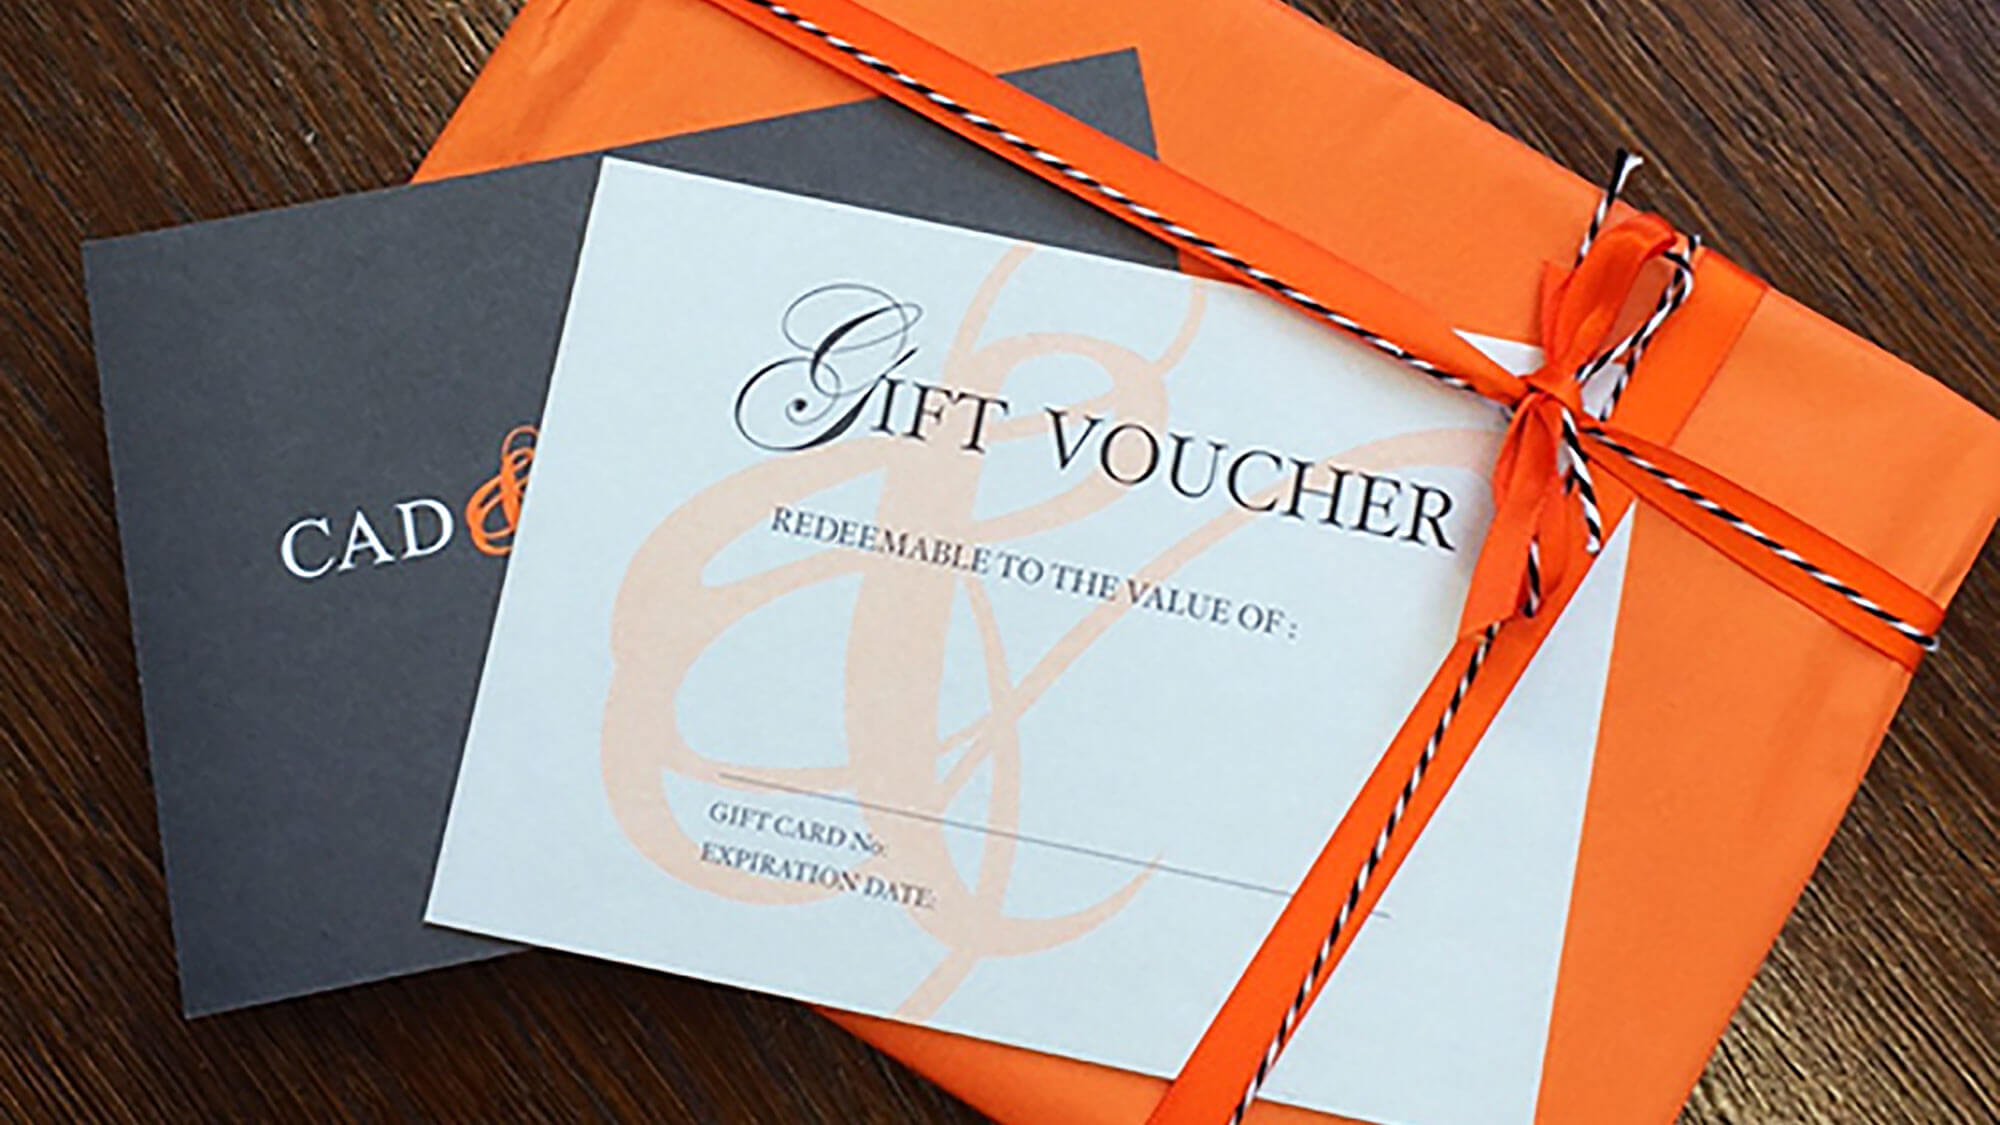 cad-and-the-dandy-gift-voucher-2015